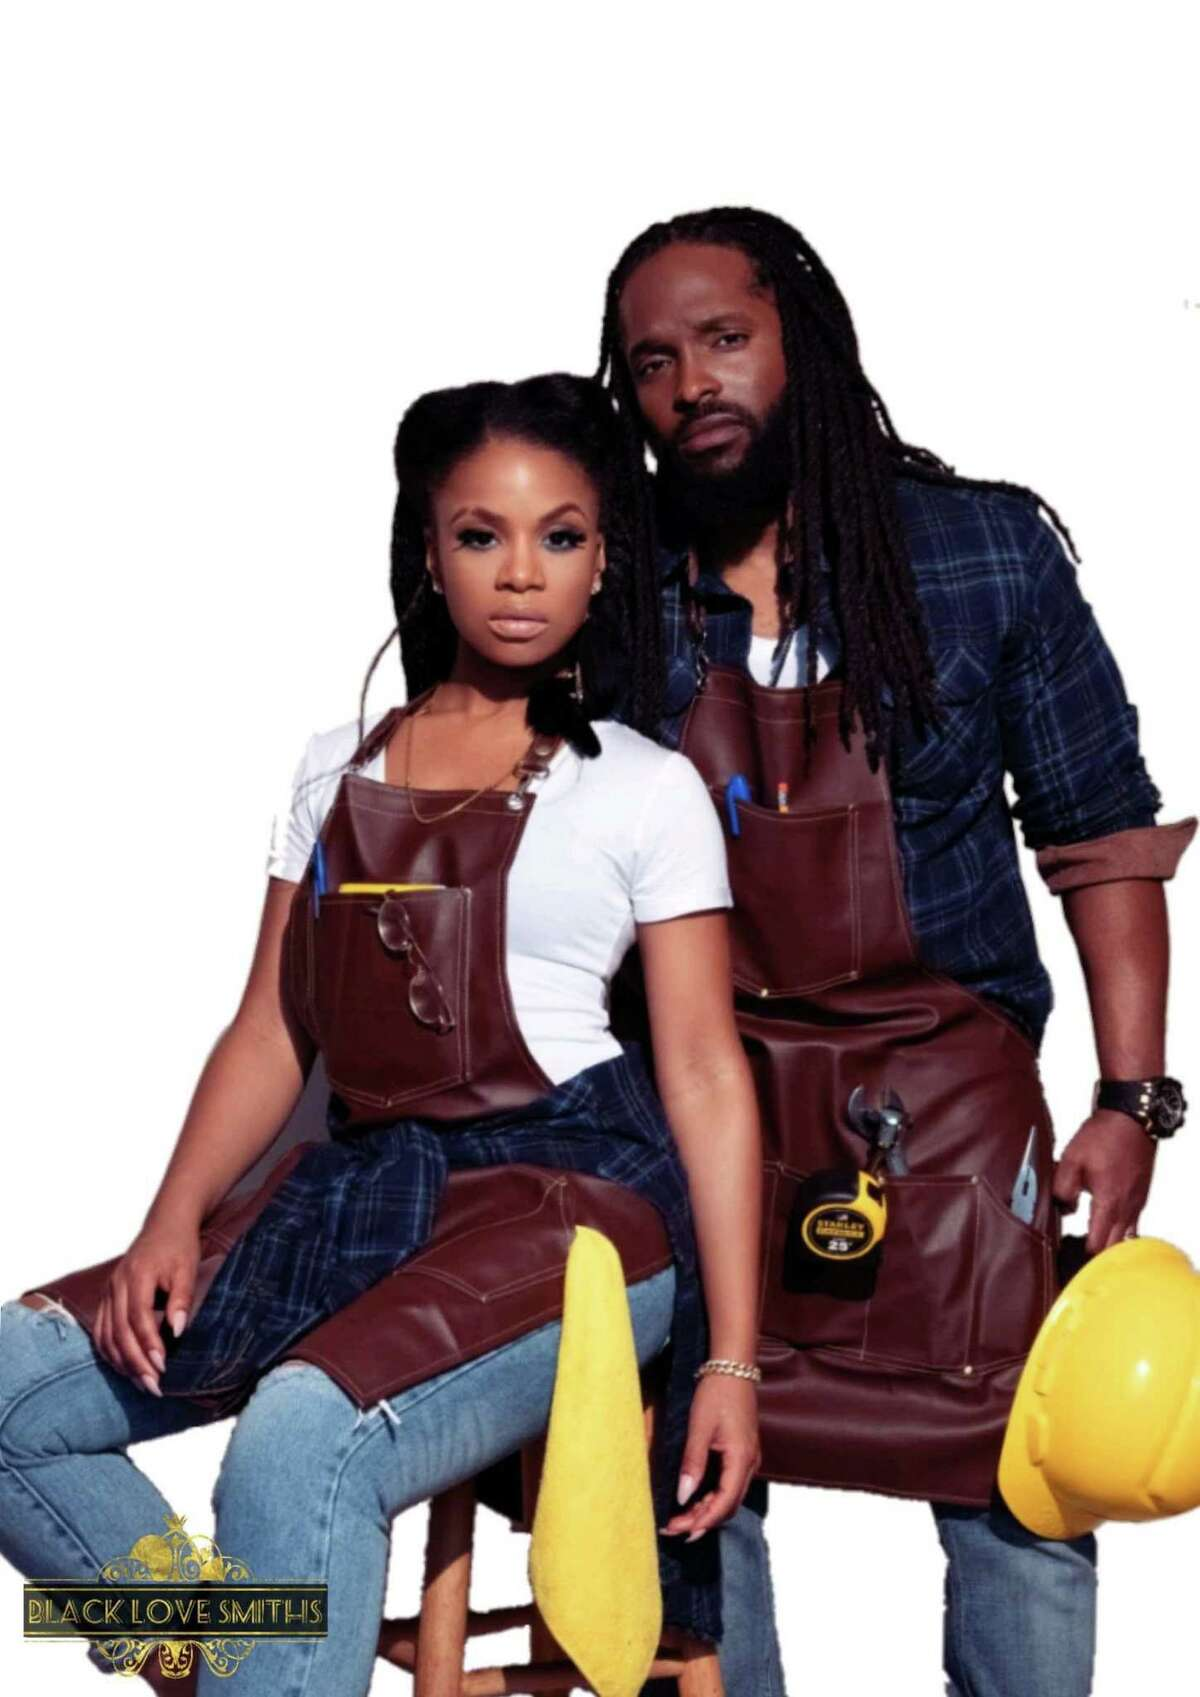 The BlackLoveSmiths is a Hartford-based music duo.